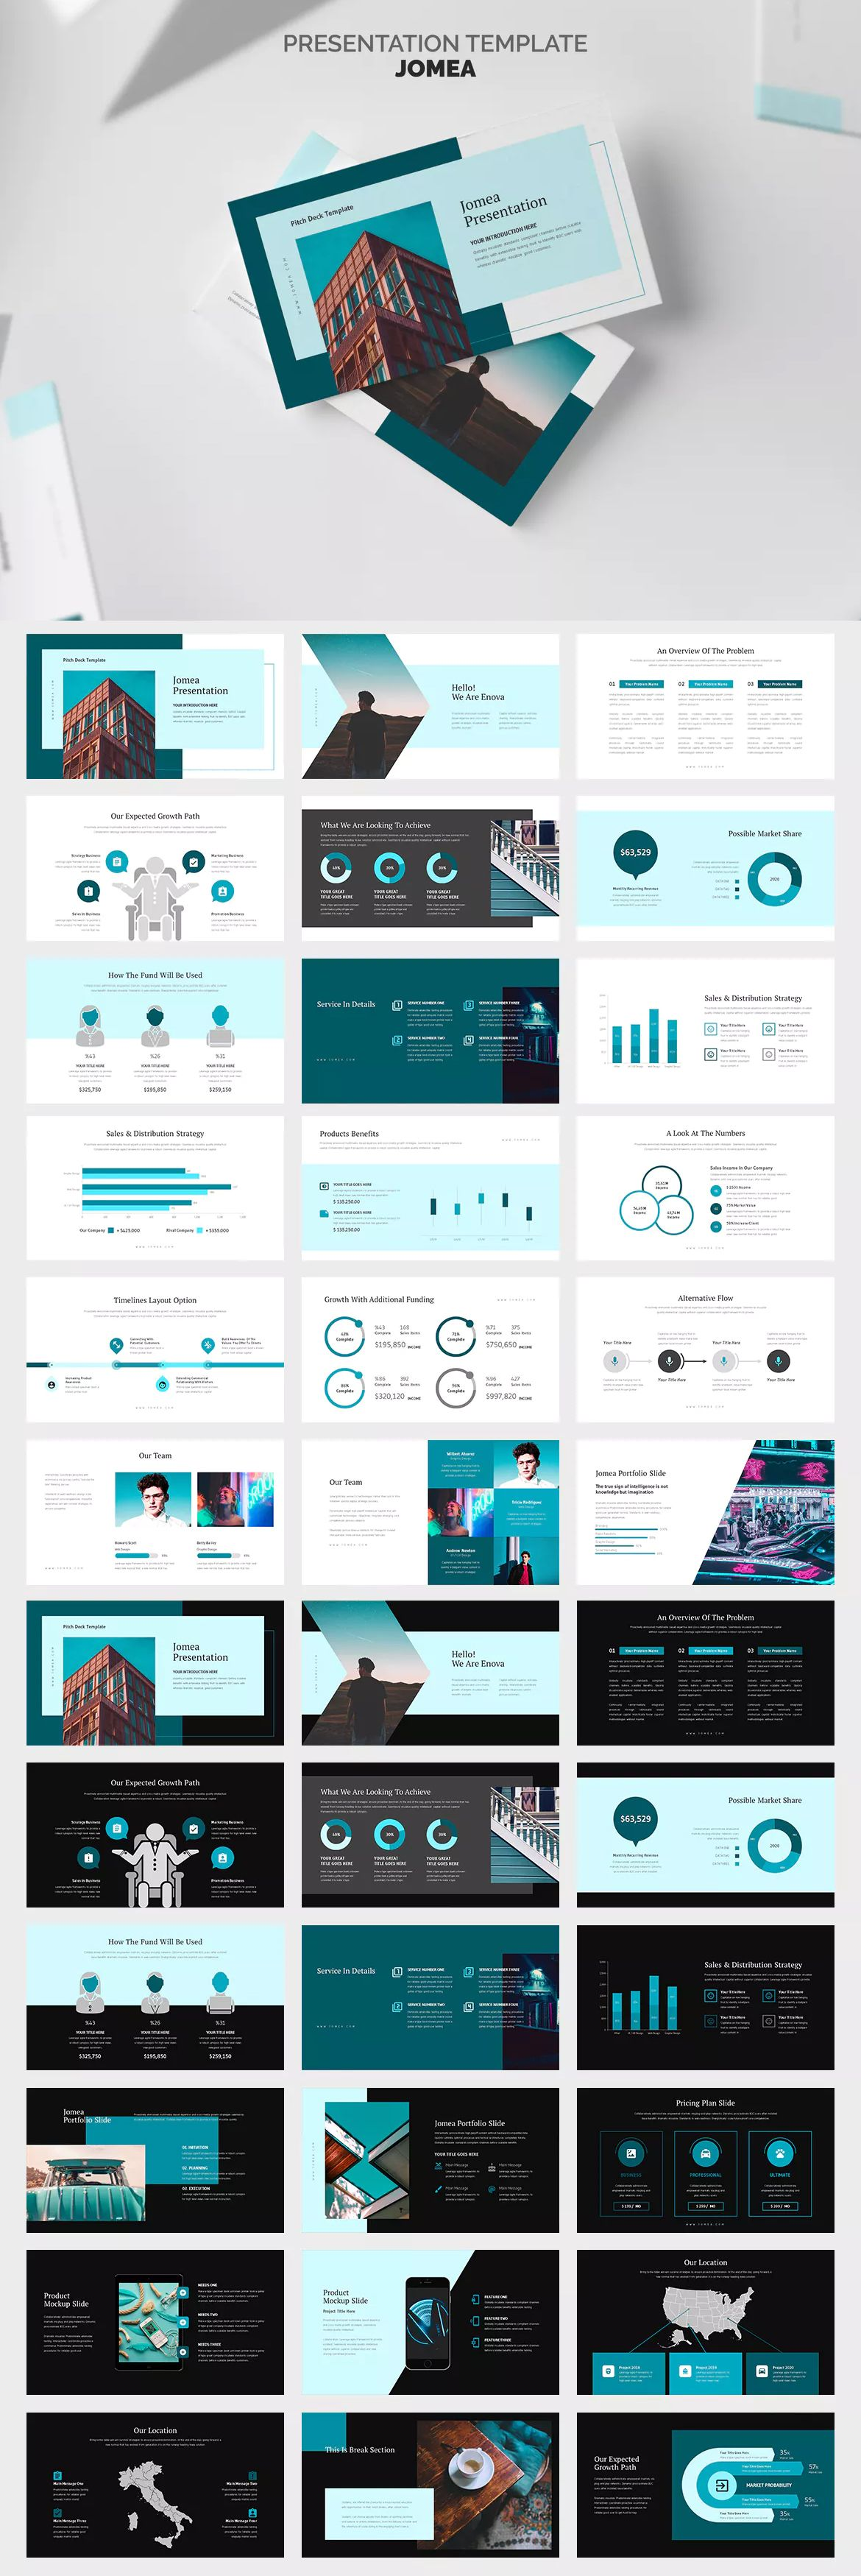 Jomea : Cyan Color Tone Pitch Deck Powerpoint Presentation Template